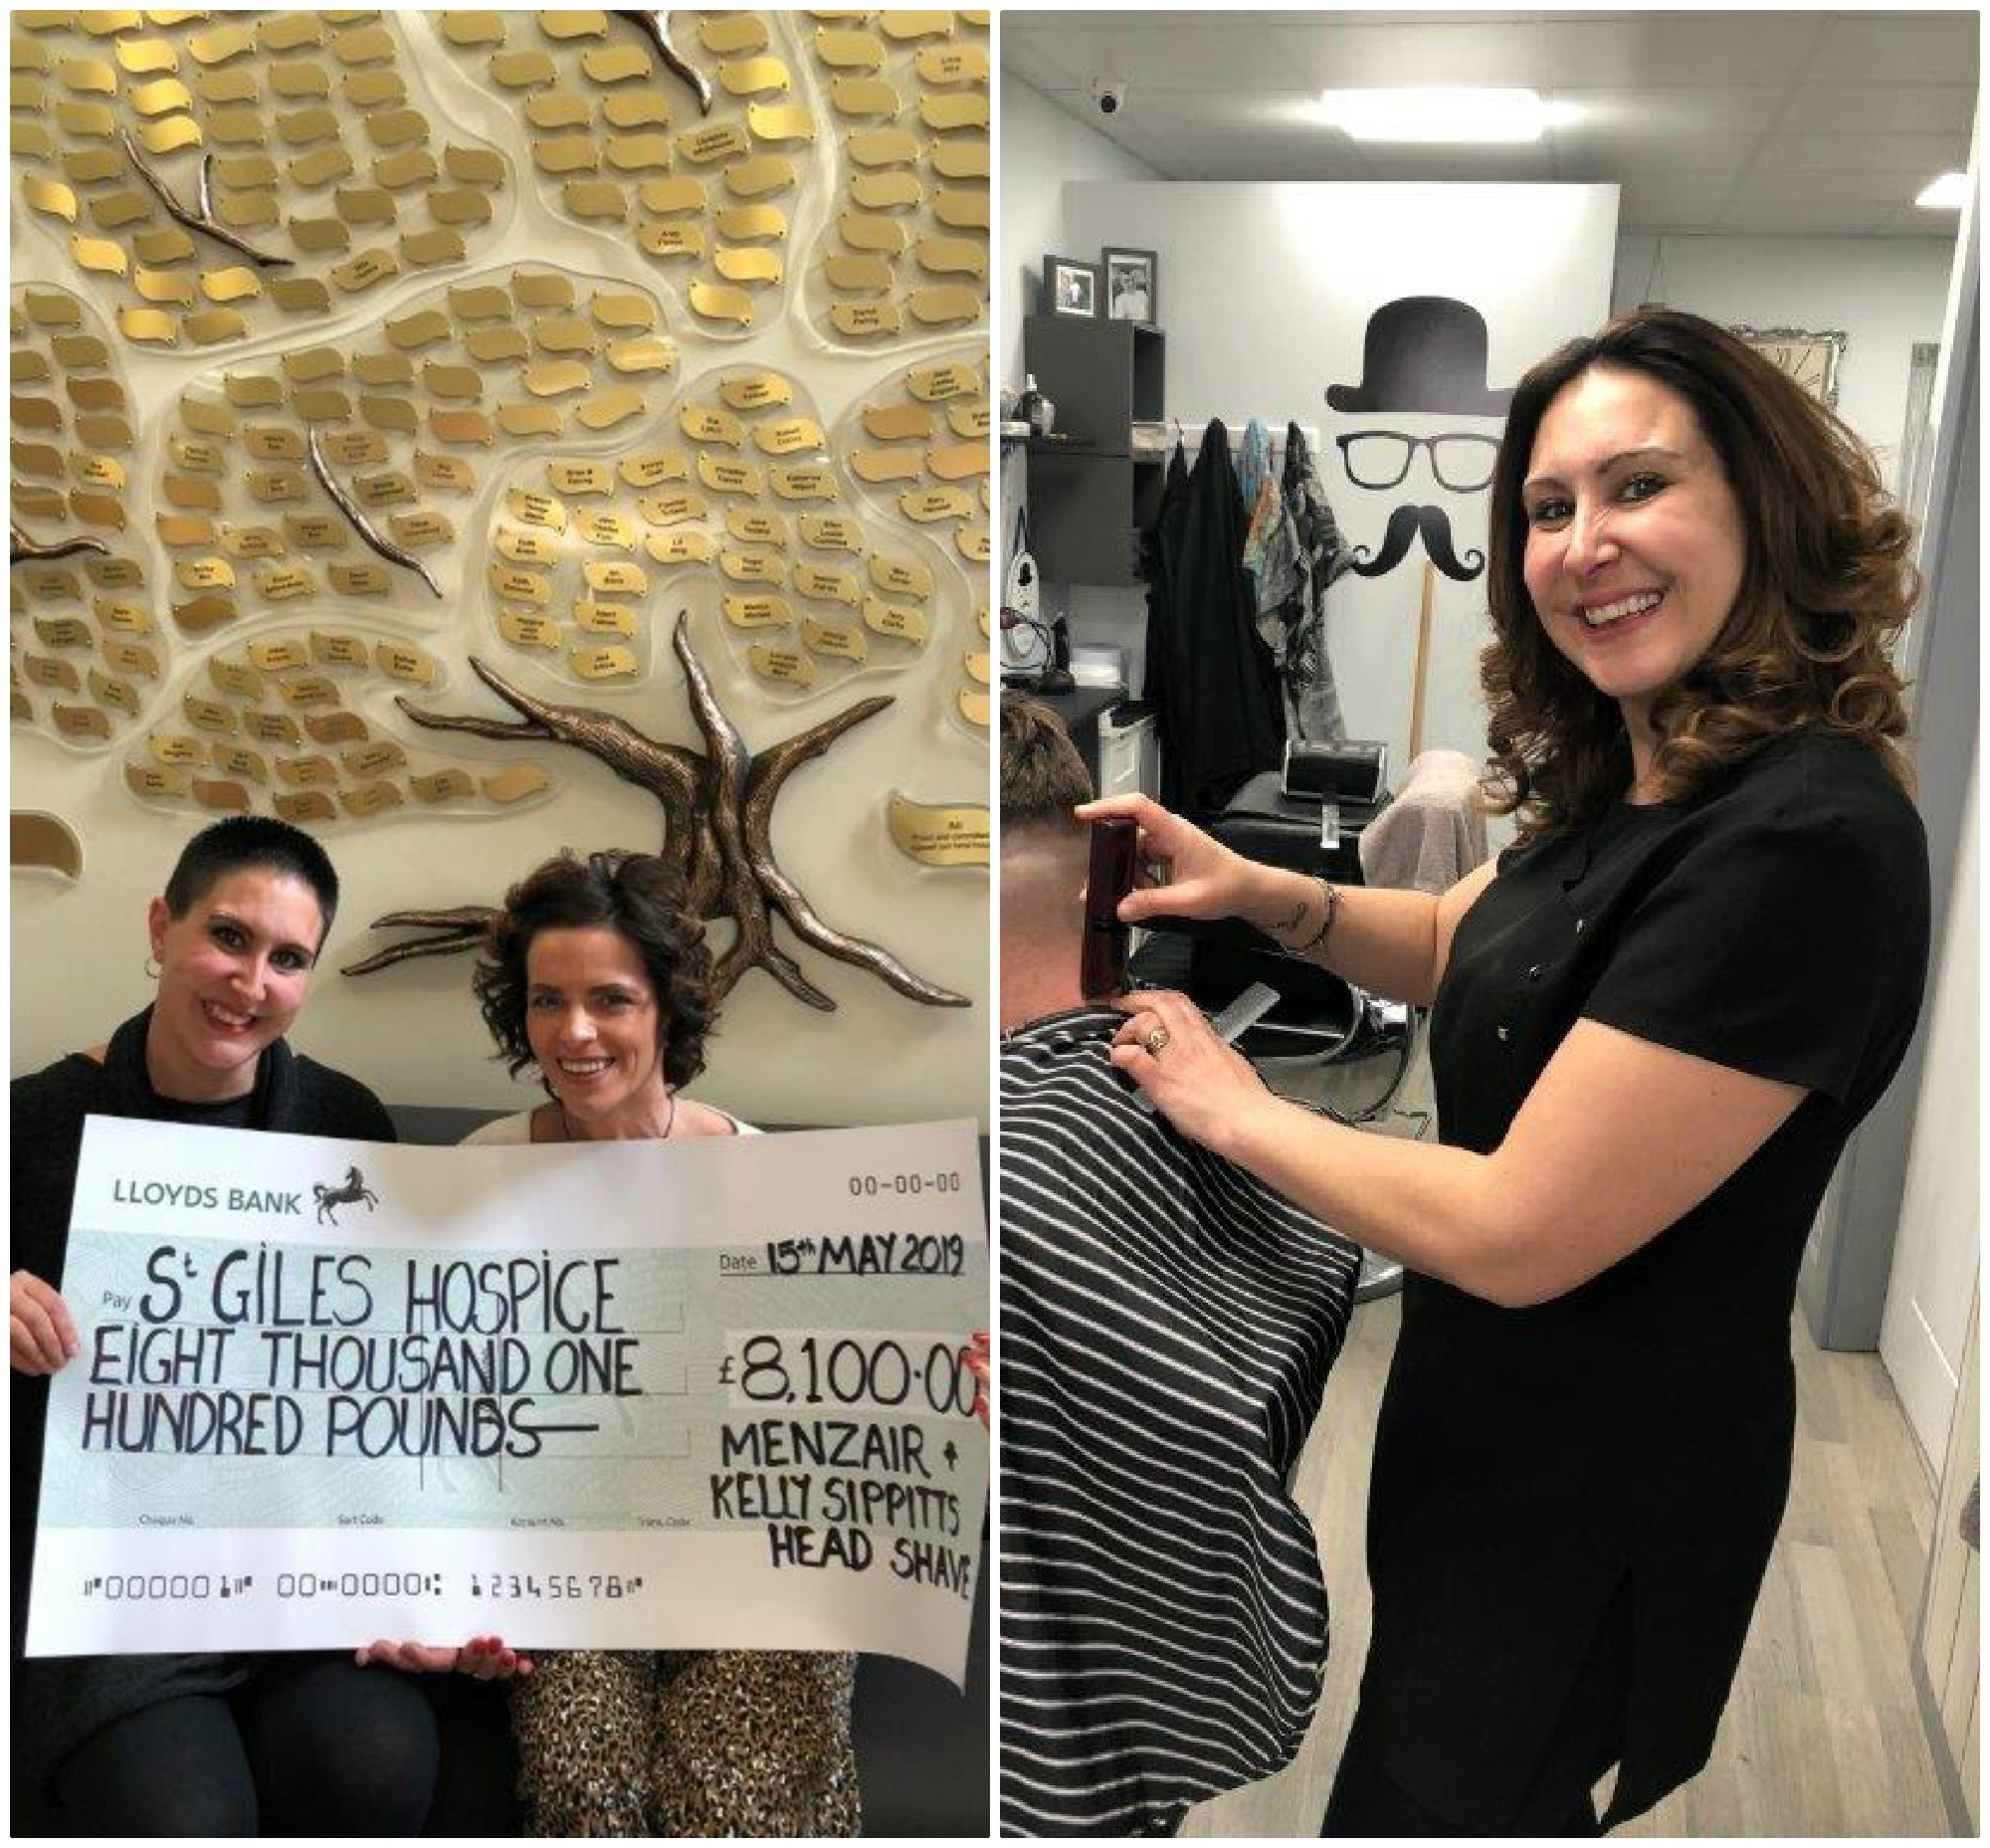 Tamworth headshave party raises £8,100 for St Giles